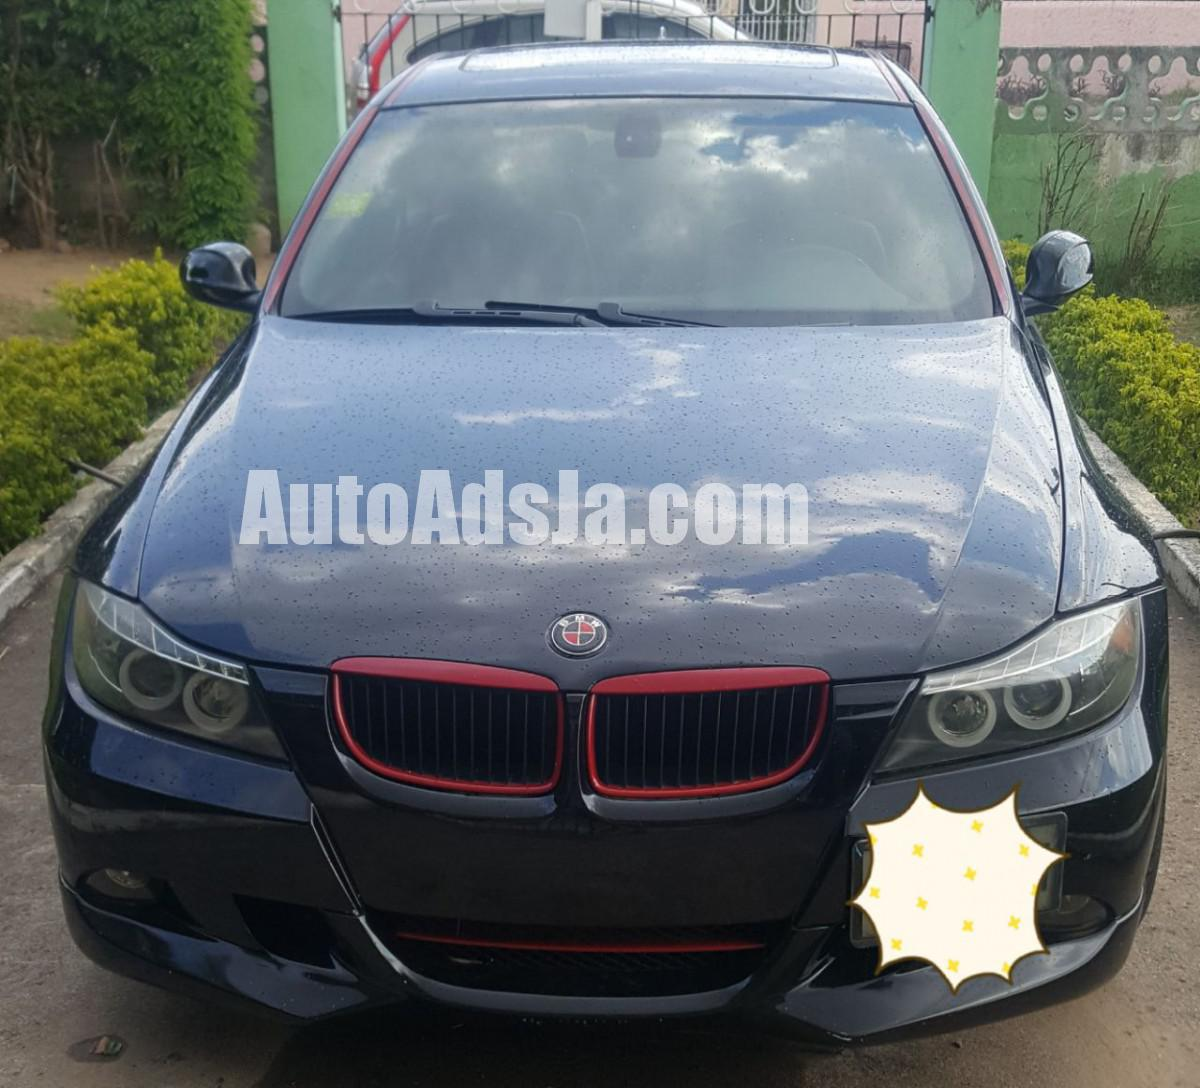 2006 BMW 325i For Sale In Kingston / St. Andrew, Jamaica